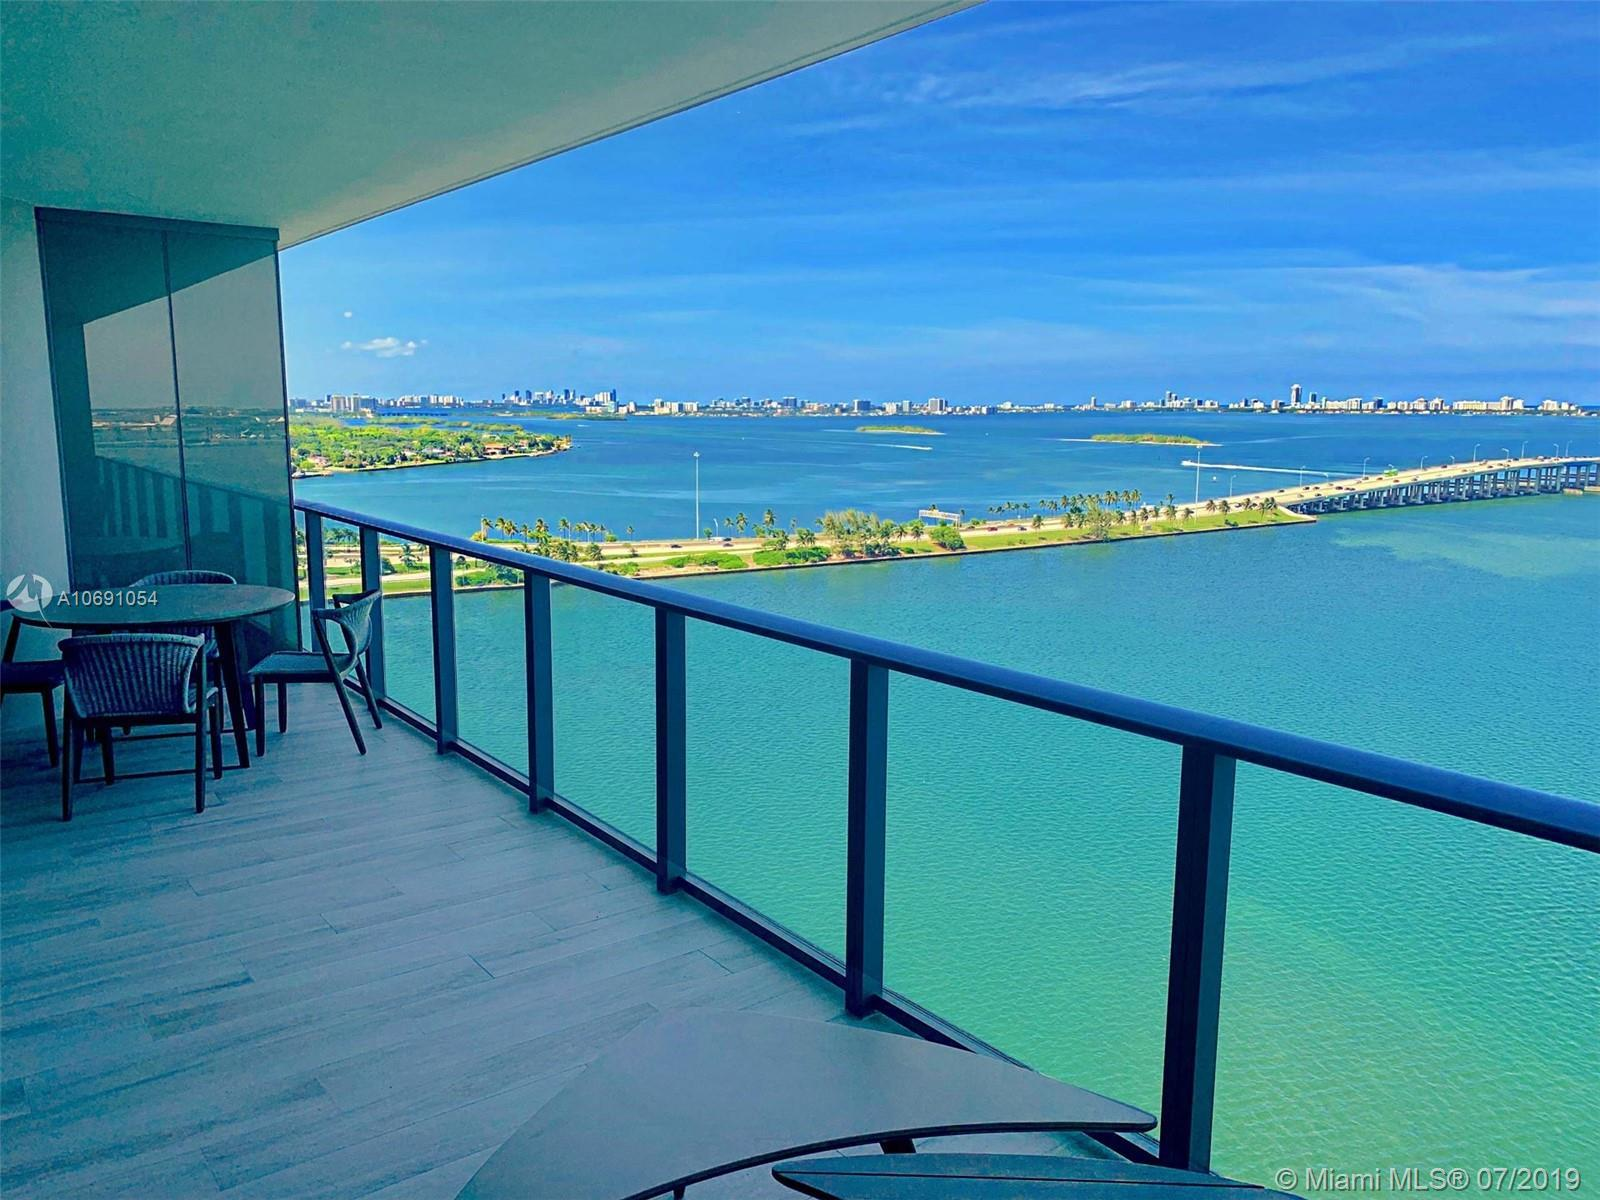 One Paraiso spacious 3 bedrooms / 3 bathrooms + den unit with stunning bay views. Great open layout